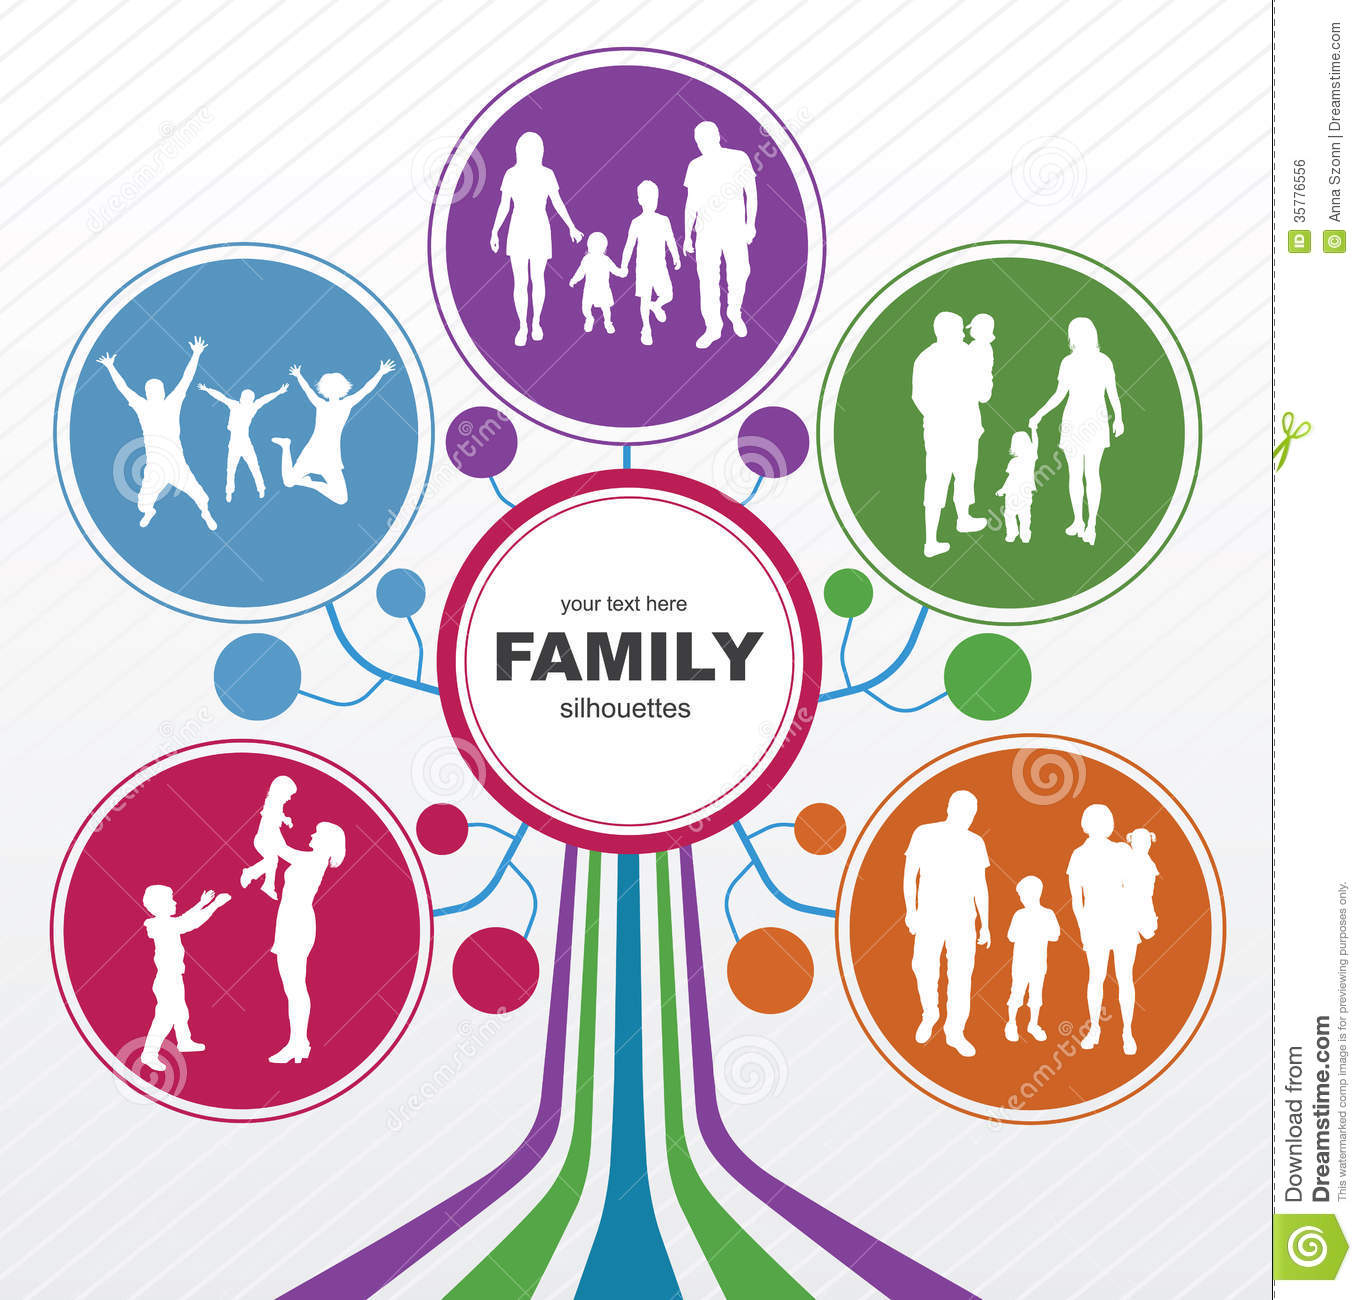 ... : Family concept background. Abstract tree with family silhouettes